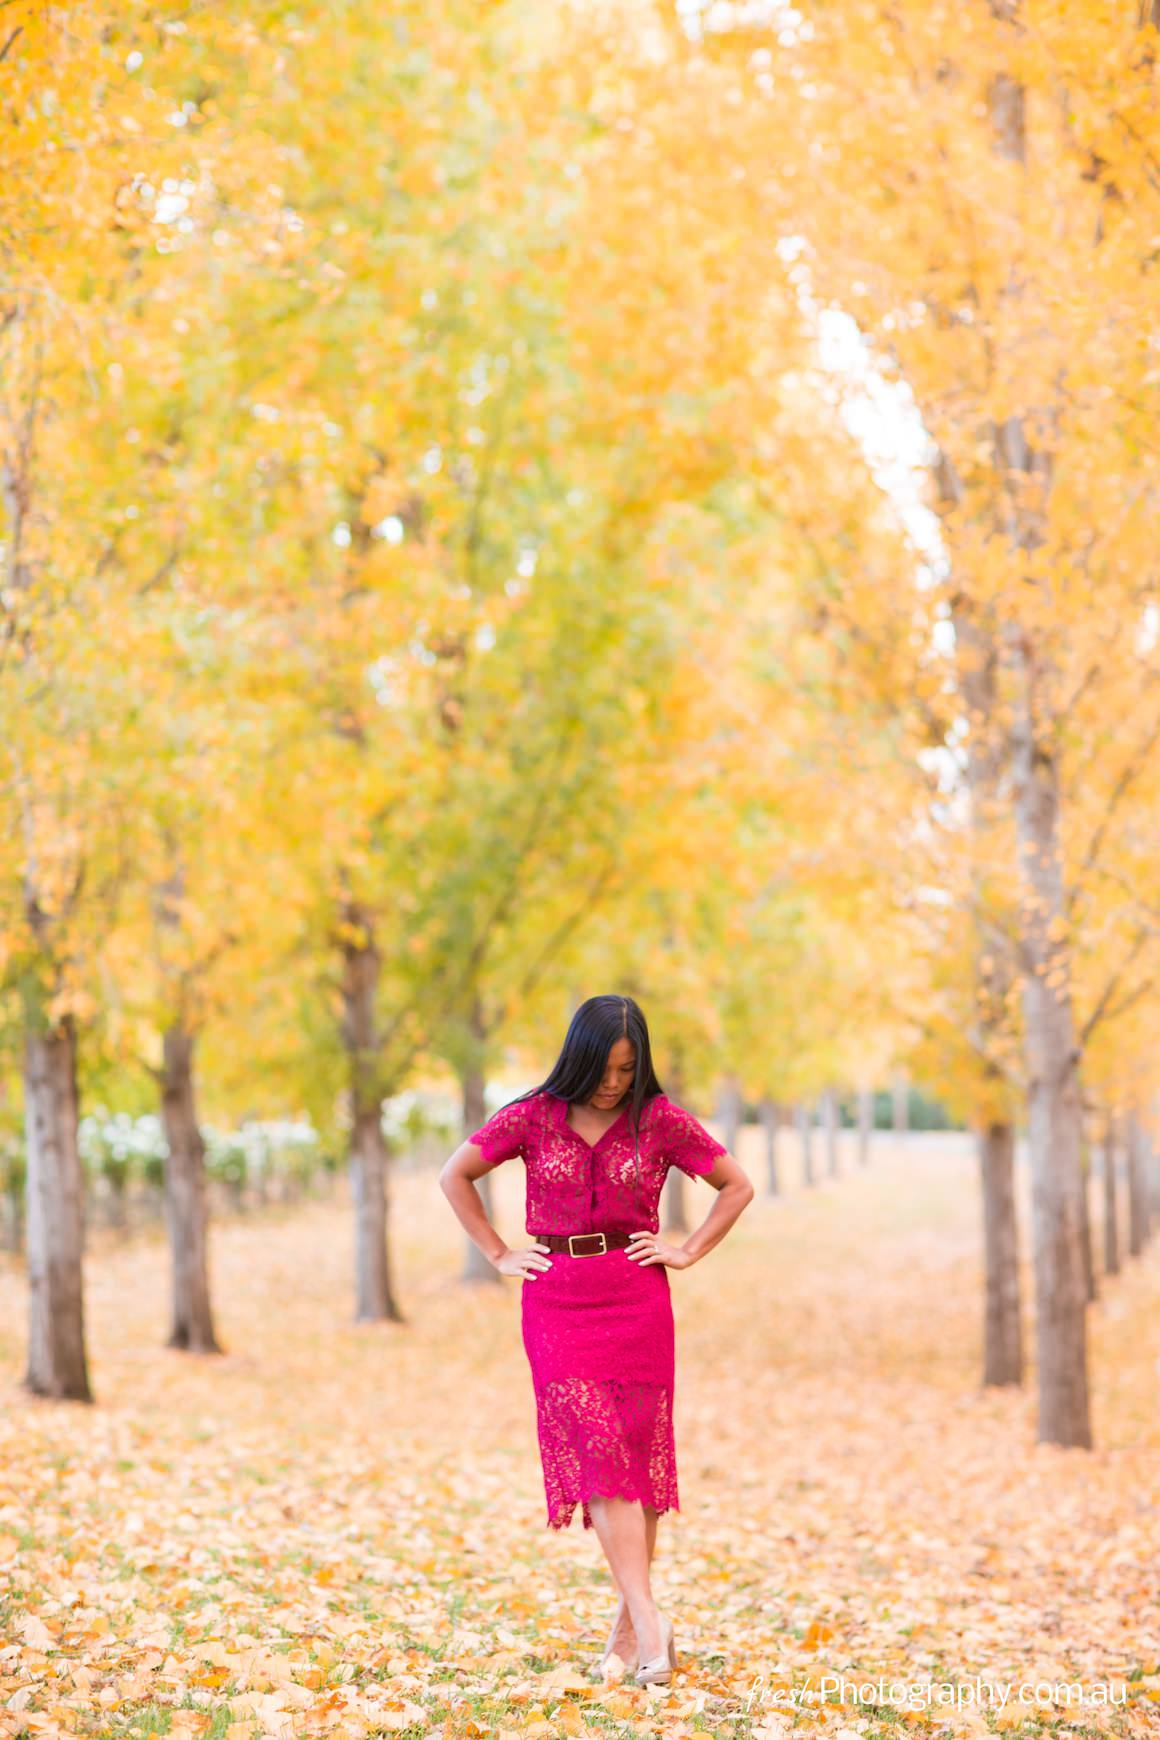 fashion photo shoot in the yarra valley with falling autumn leaves